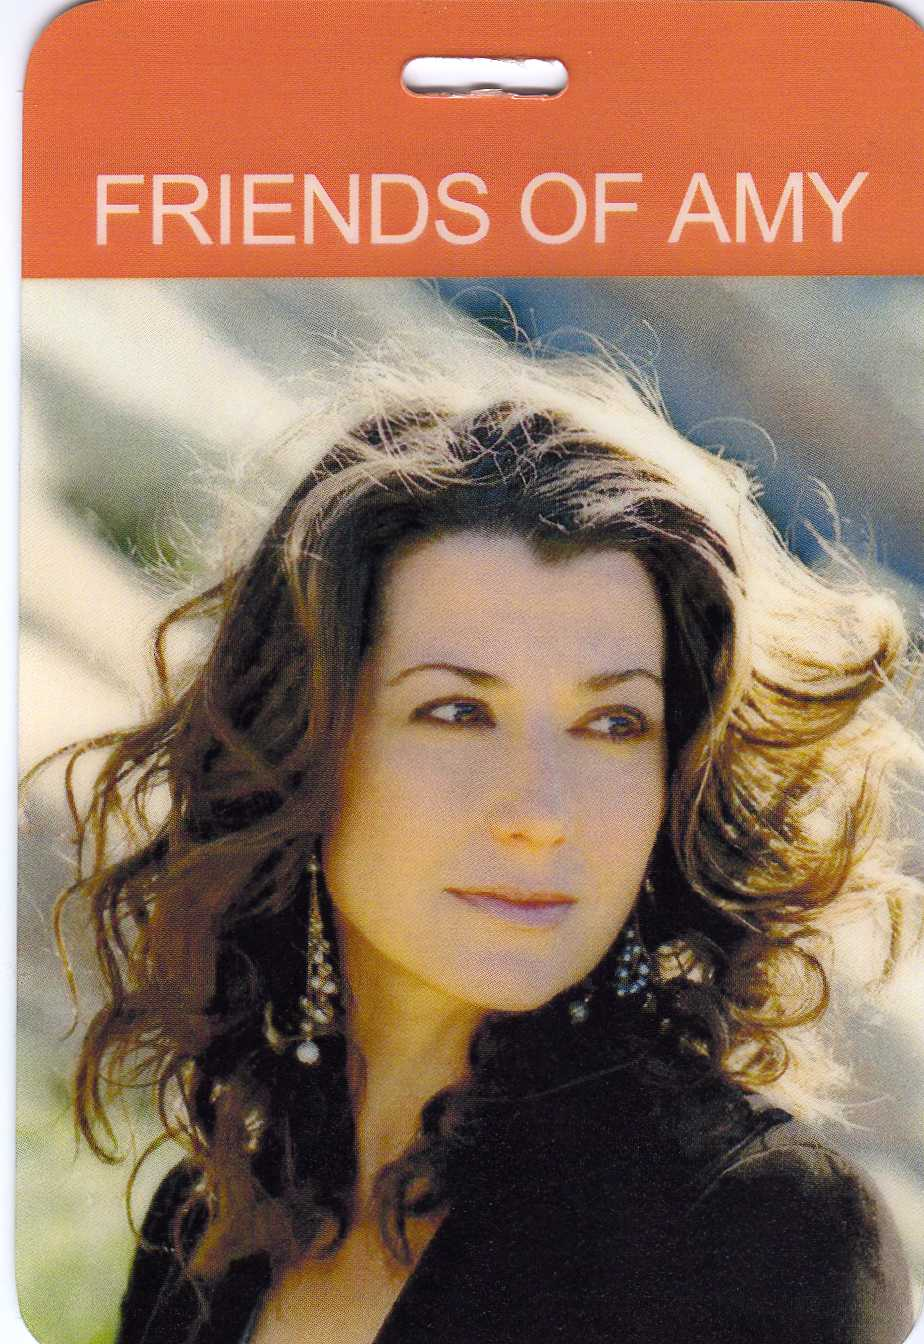 nhk world meet and speak amy grant